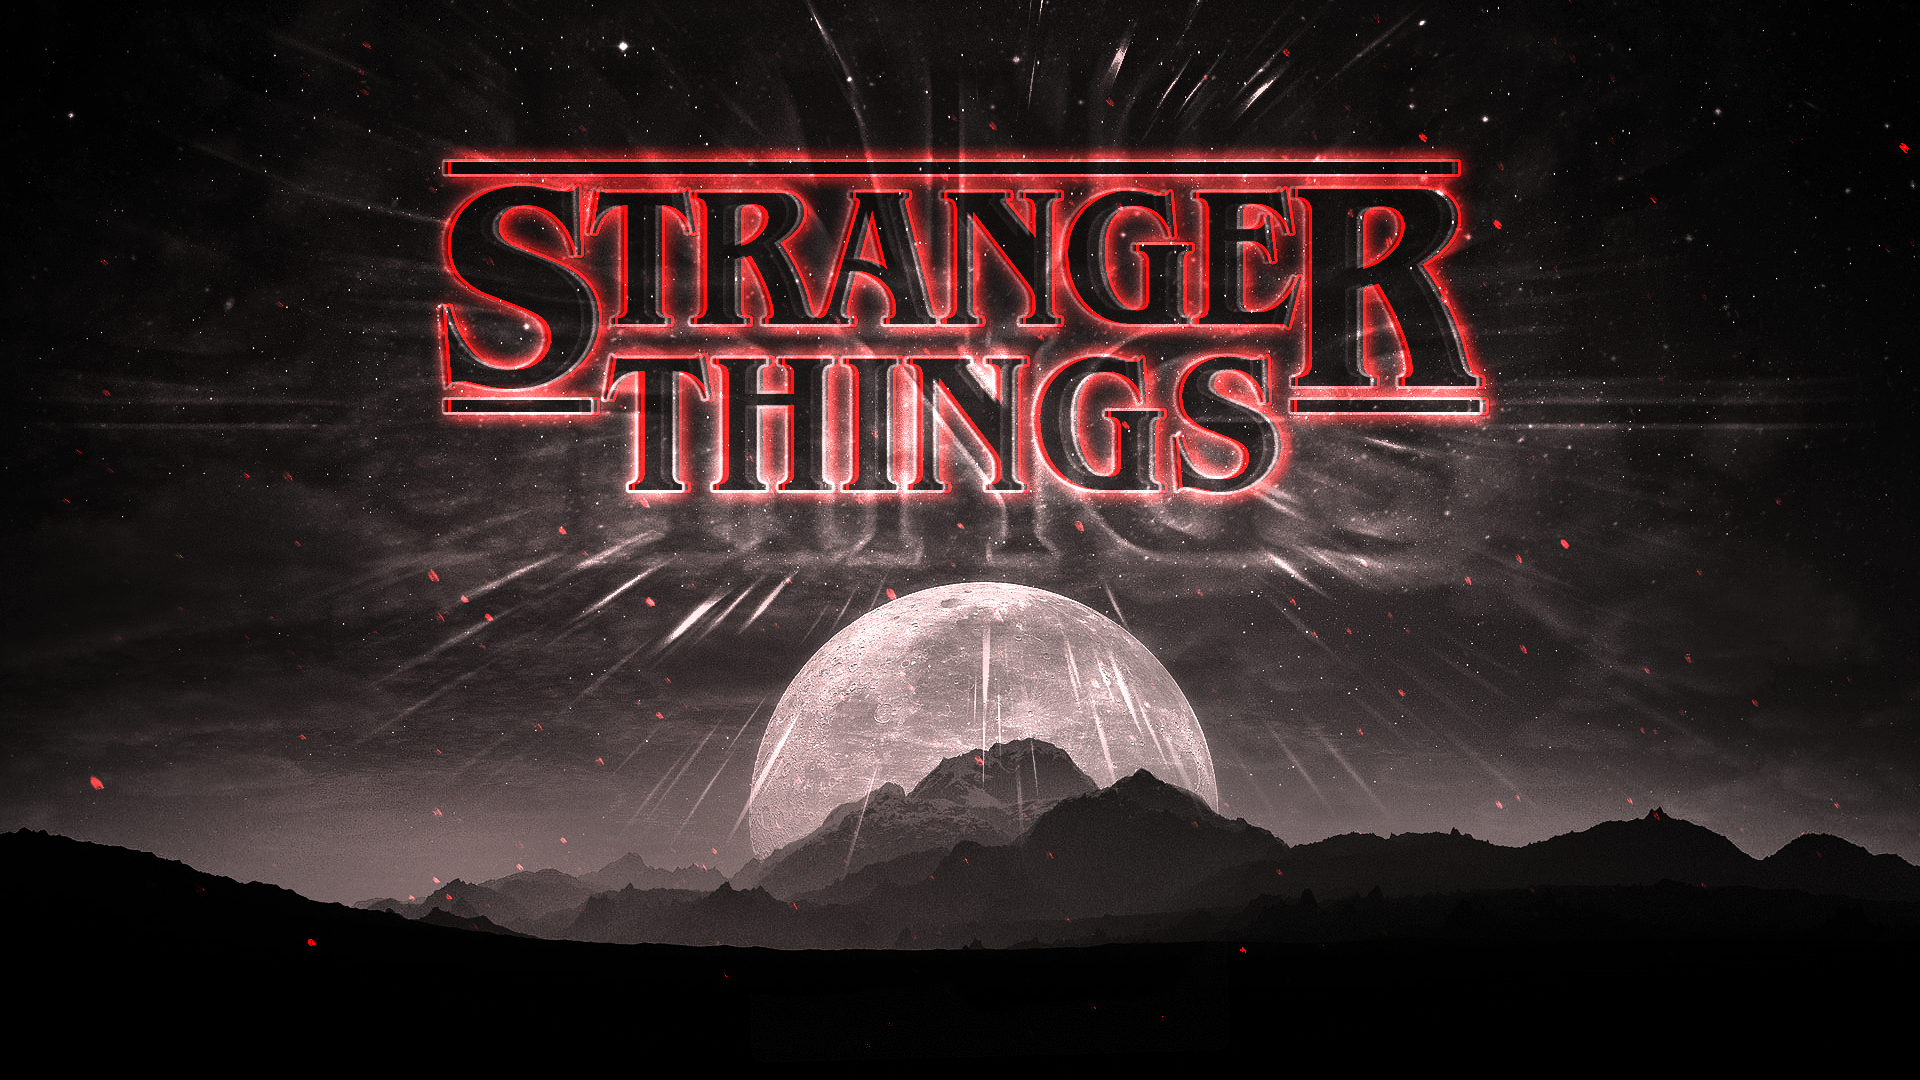 Stranger things fondo de pantalla hd fondo de escritorio for Fondo de pantalla stranger things